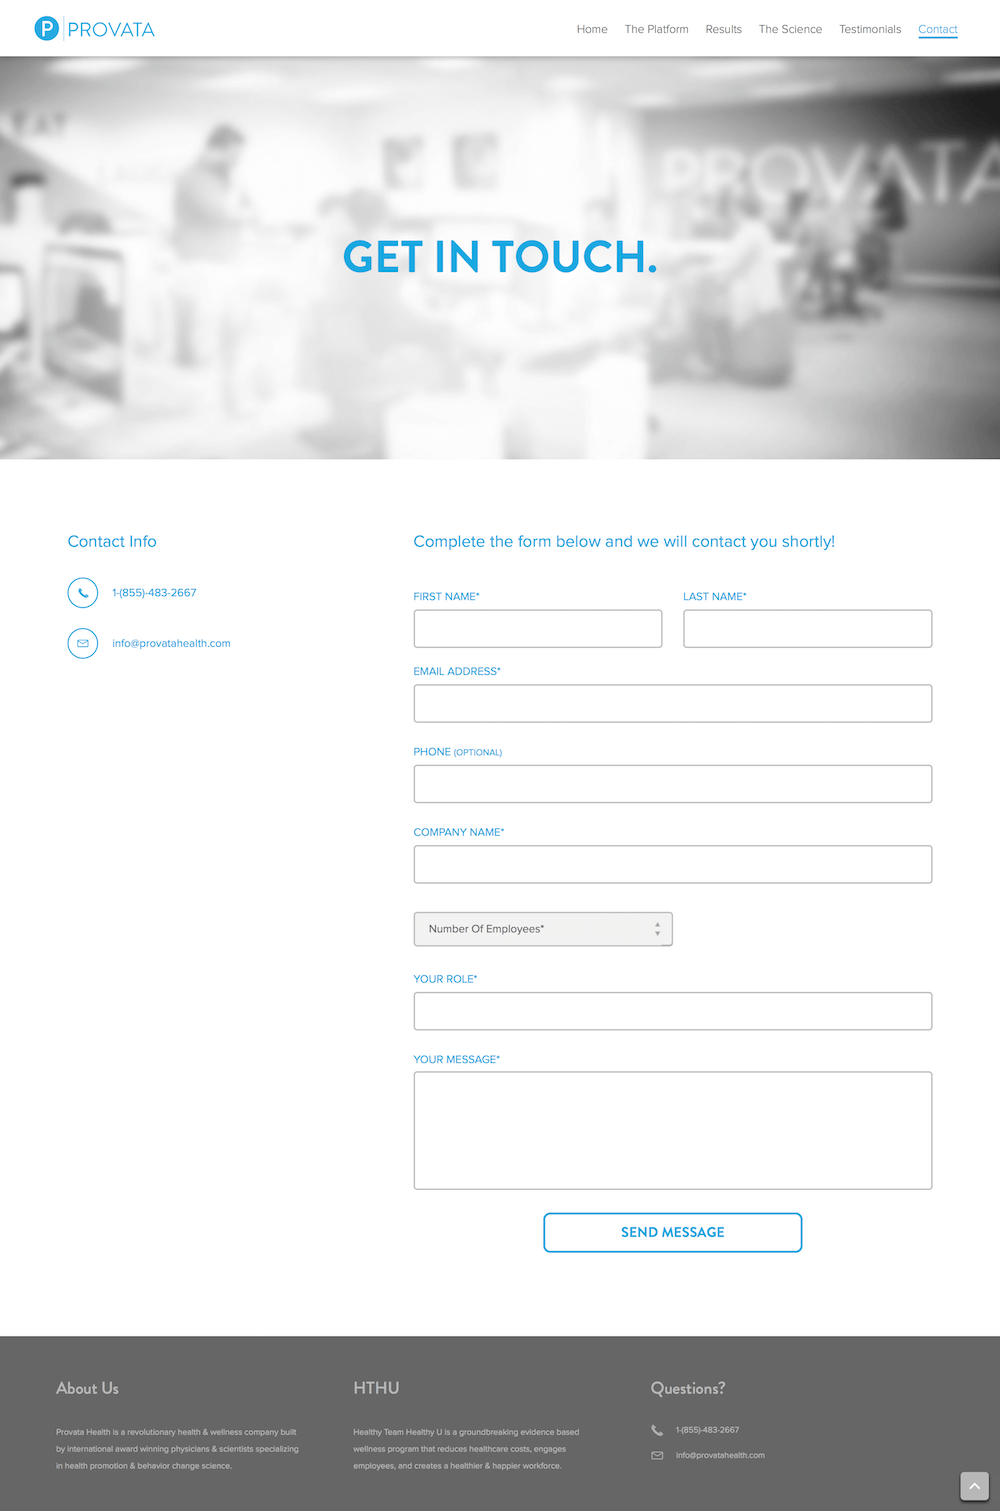 Screenshot of the Provata Health marketing web site Contact page